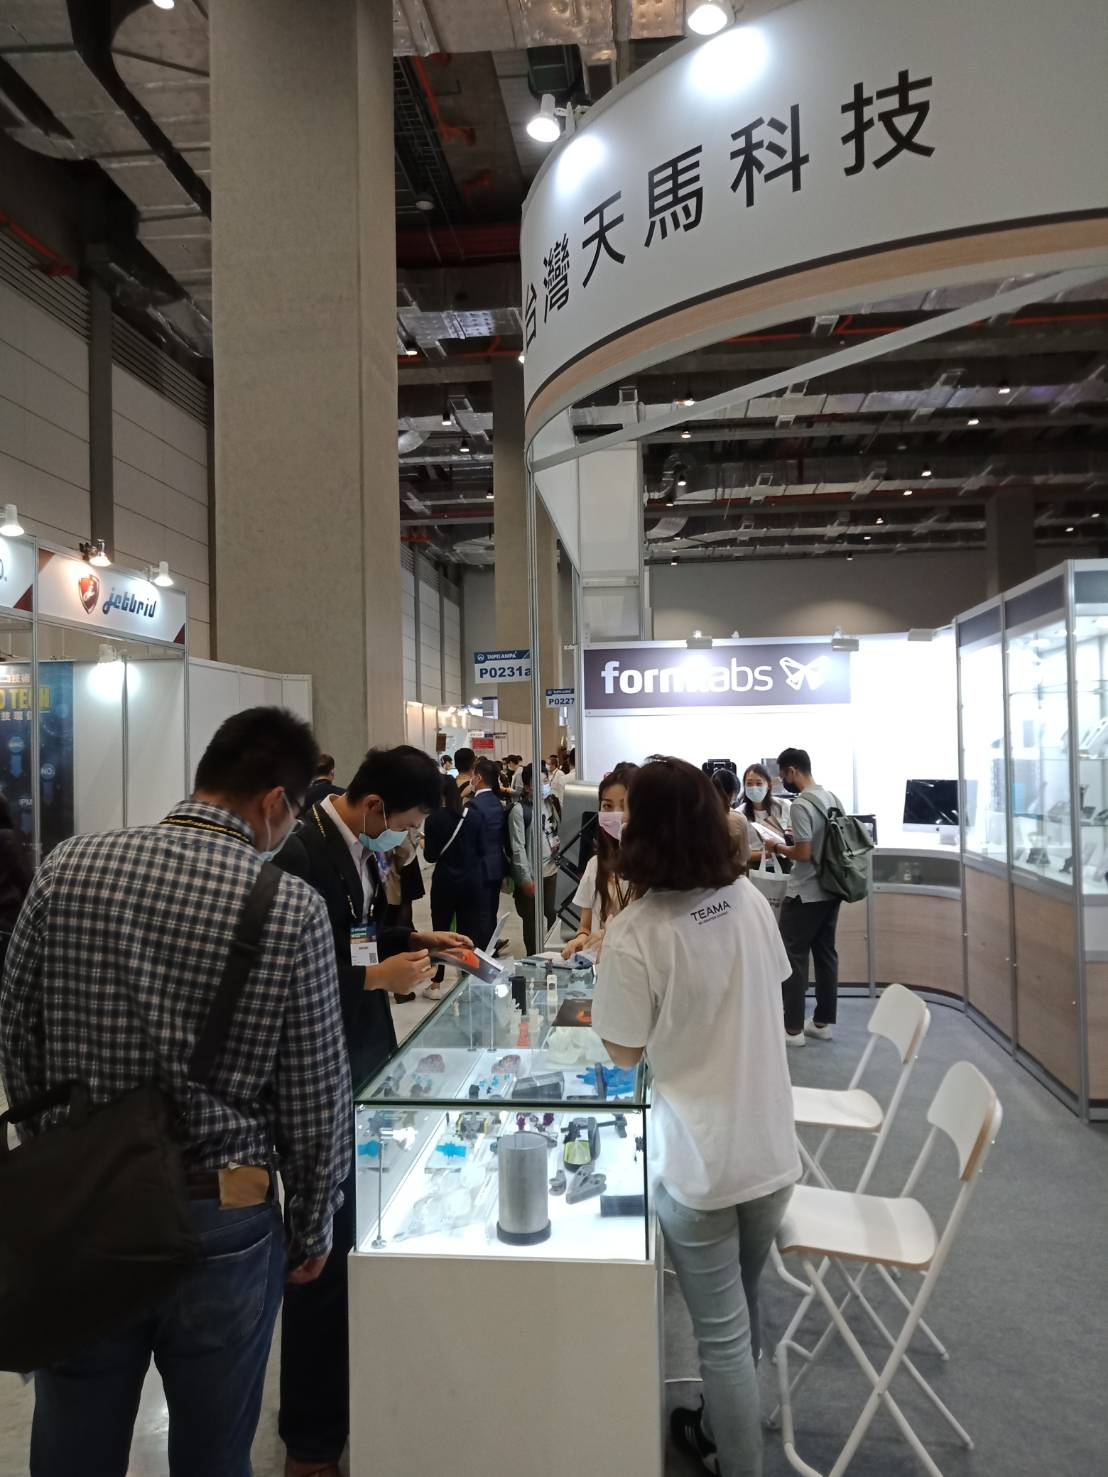 https://storage.googleapis.com/www.taiwantradeshow.com.tw/activity-photo/202010/T-49630074-name.jpg